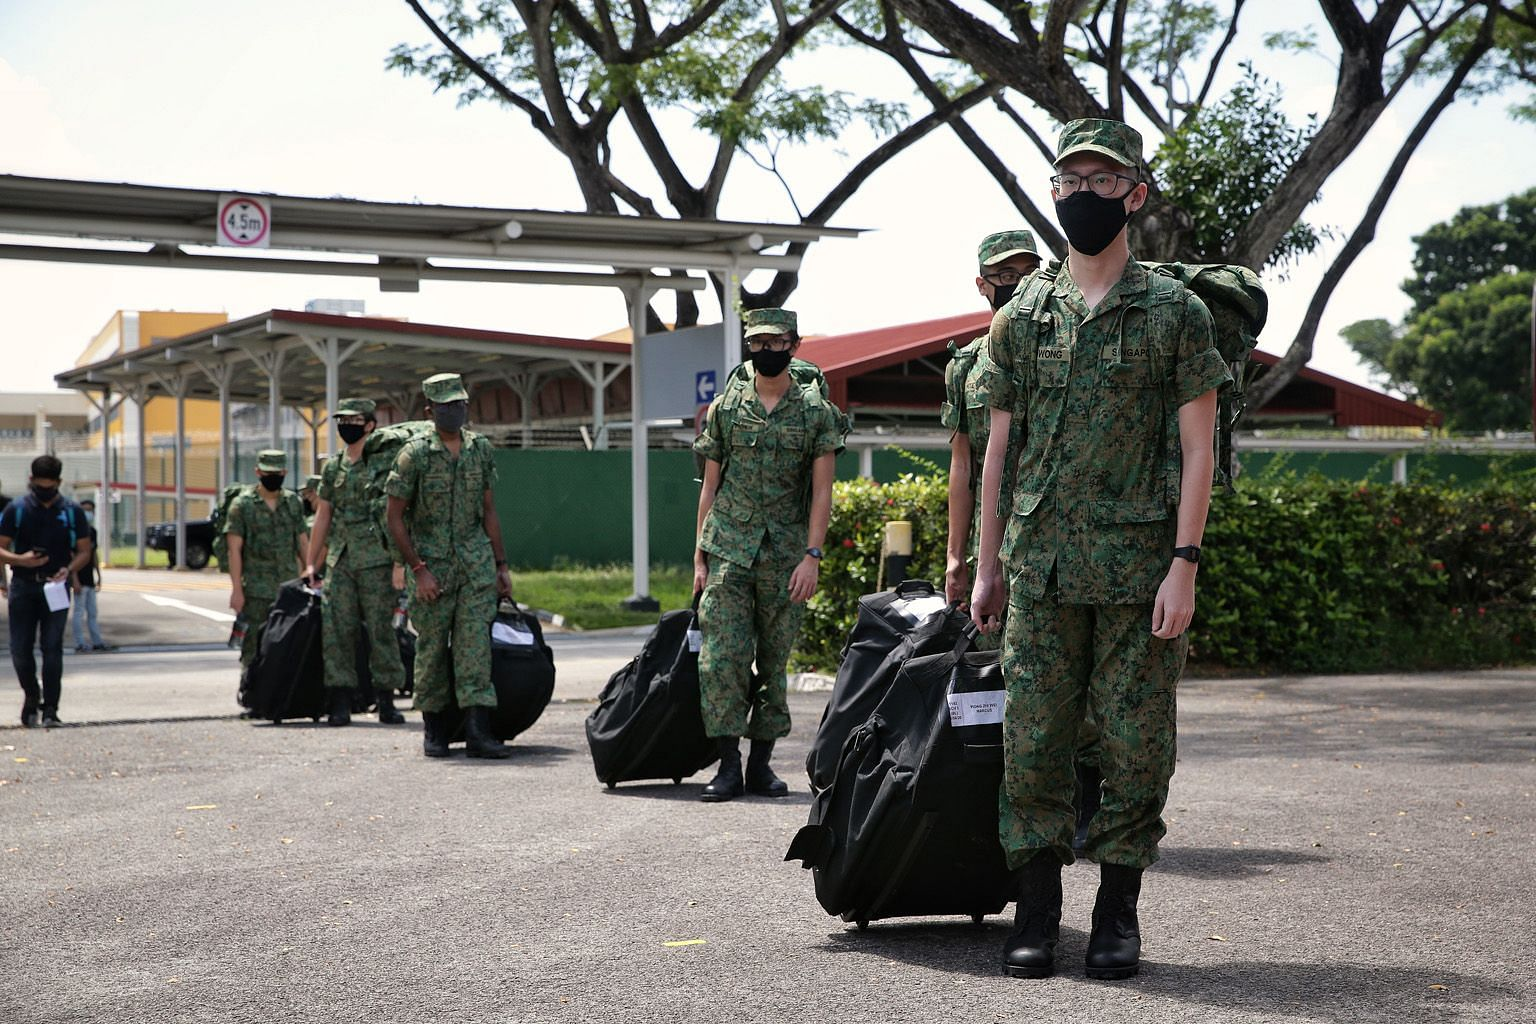 Singapore Armed Forces recruits observing safe distancing yesterday as they headed for buses taking them to the SAF Ferry Terminal. ST PHOTO: KEVIN LIM